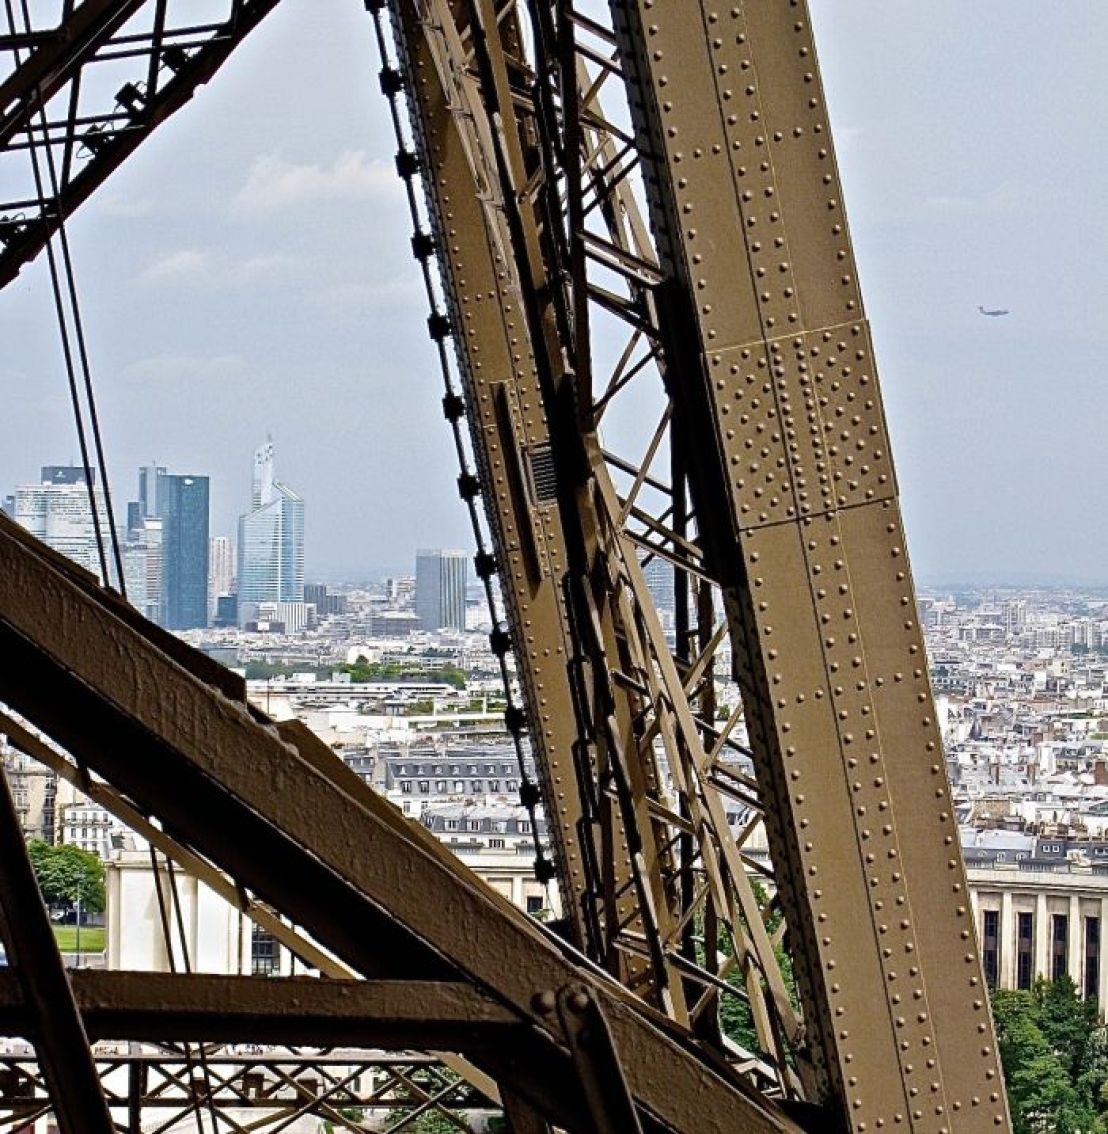 View of the city and approaching plane from the Eiffel Tower